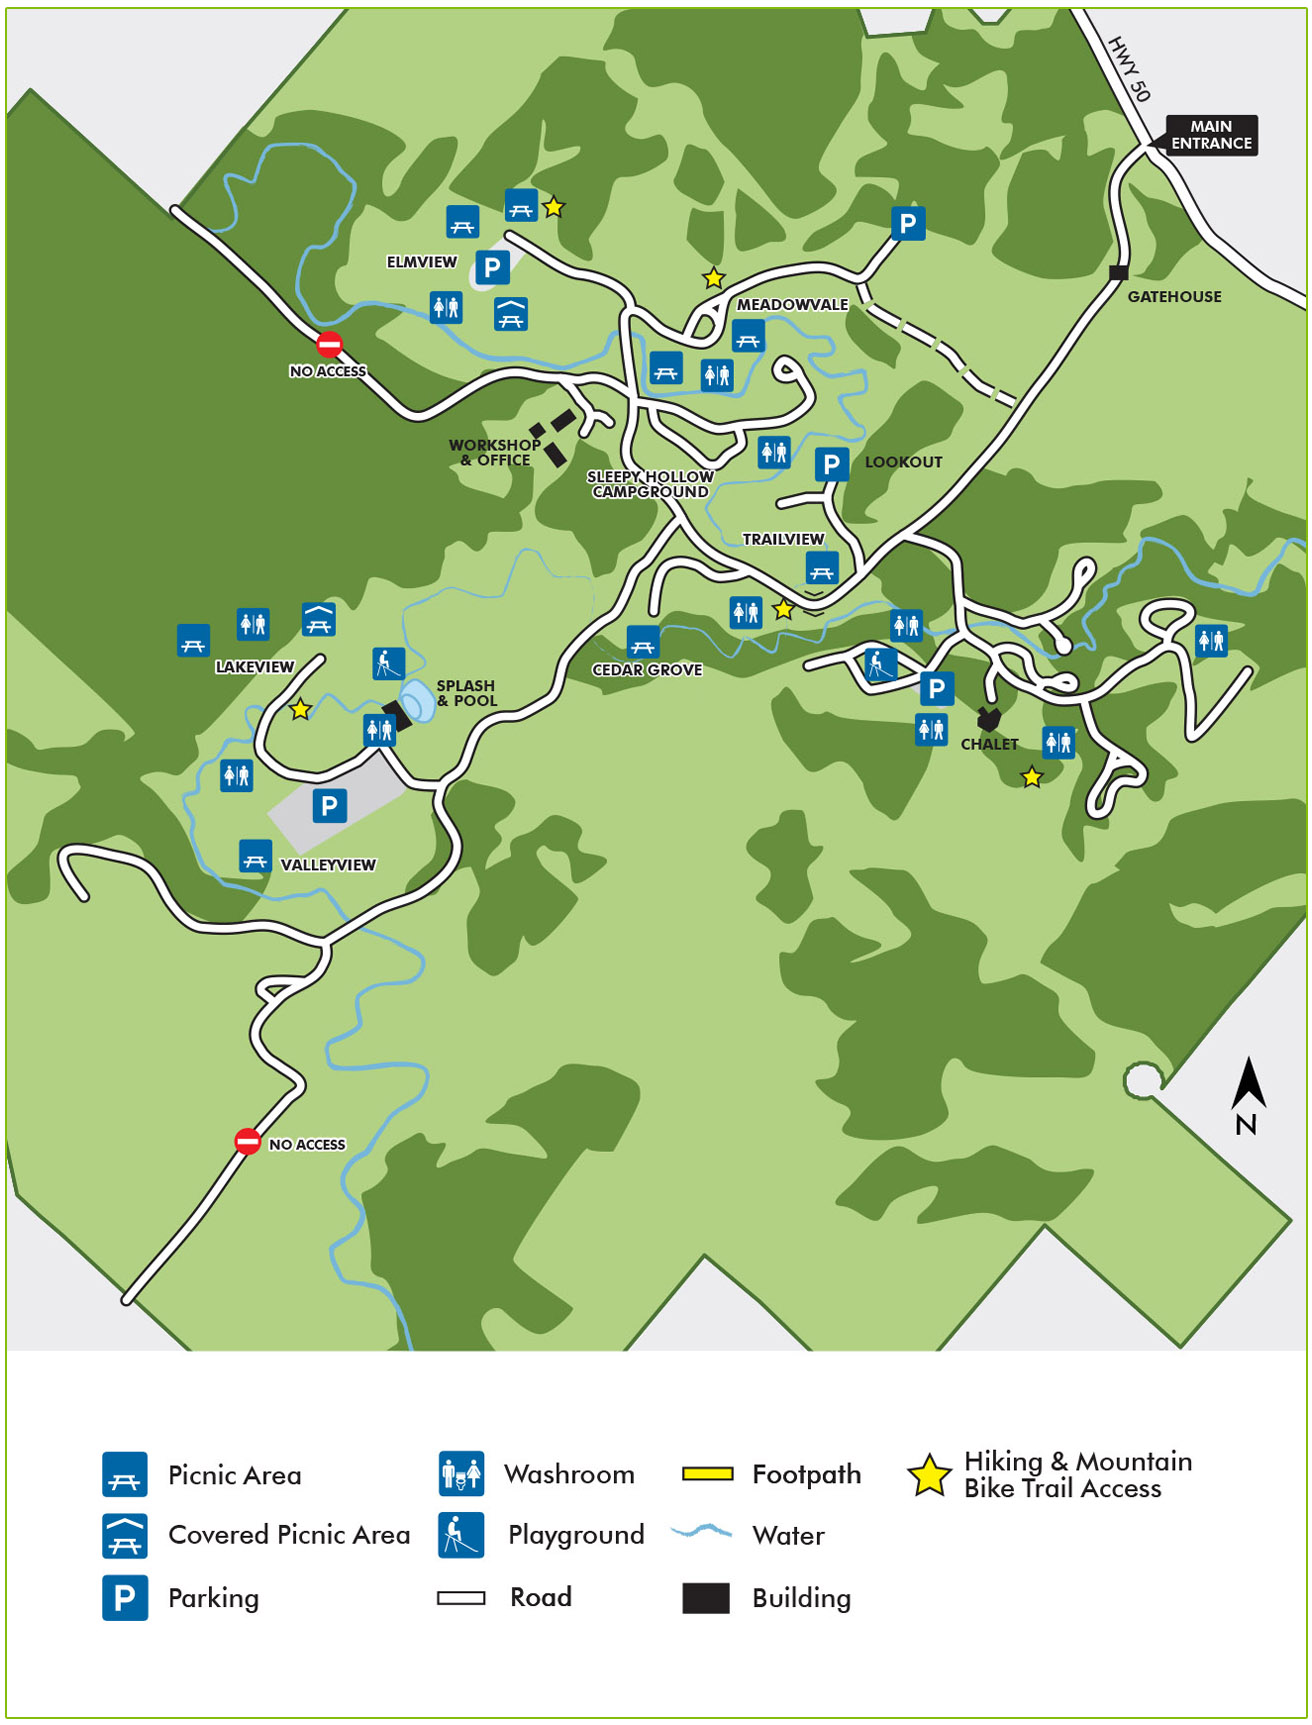 Albion hills conservation park wayfinding map